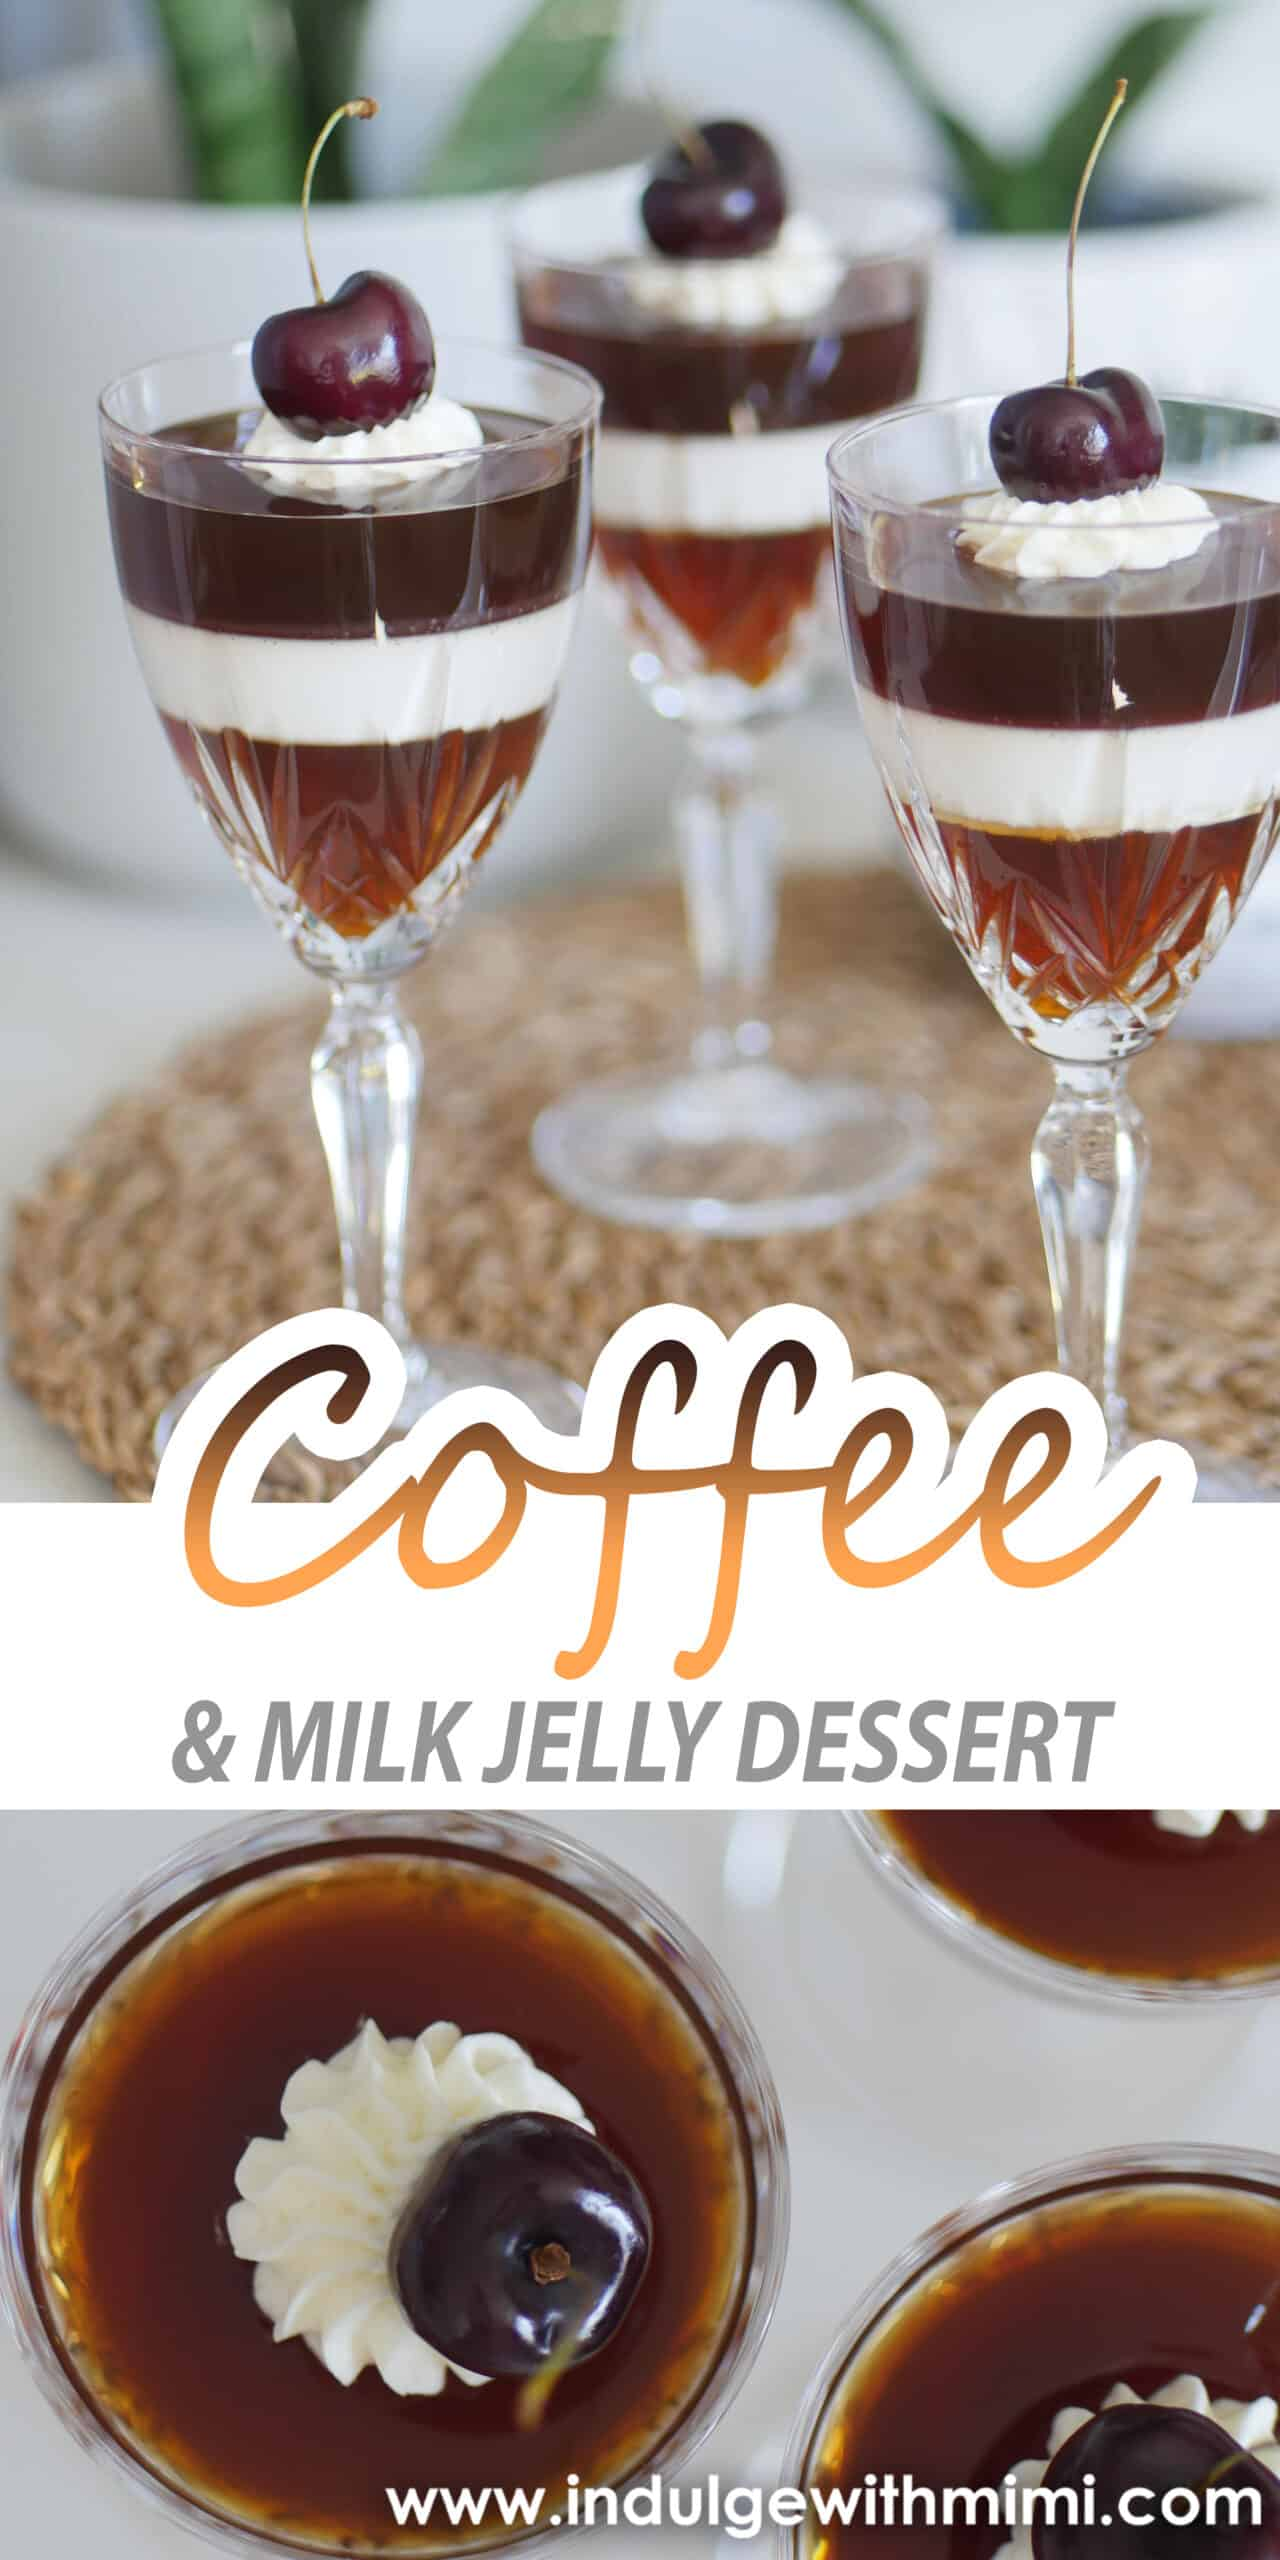 Three coffee and milk jelly desserts topped with whipped cream and a cherry inside of individual crystal glasses on a brown woven placemat.